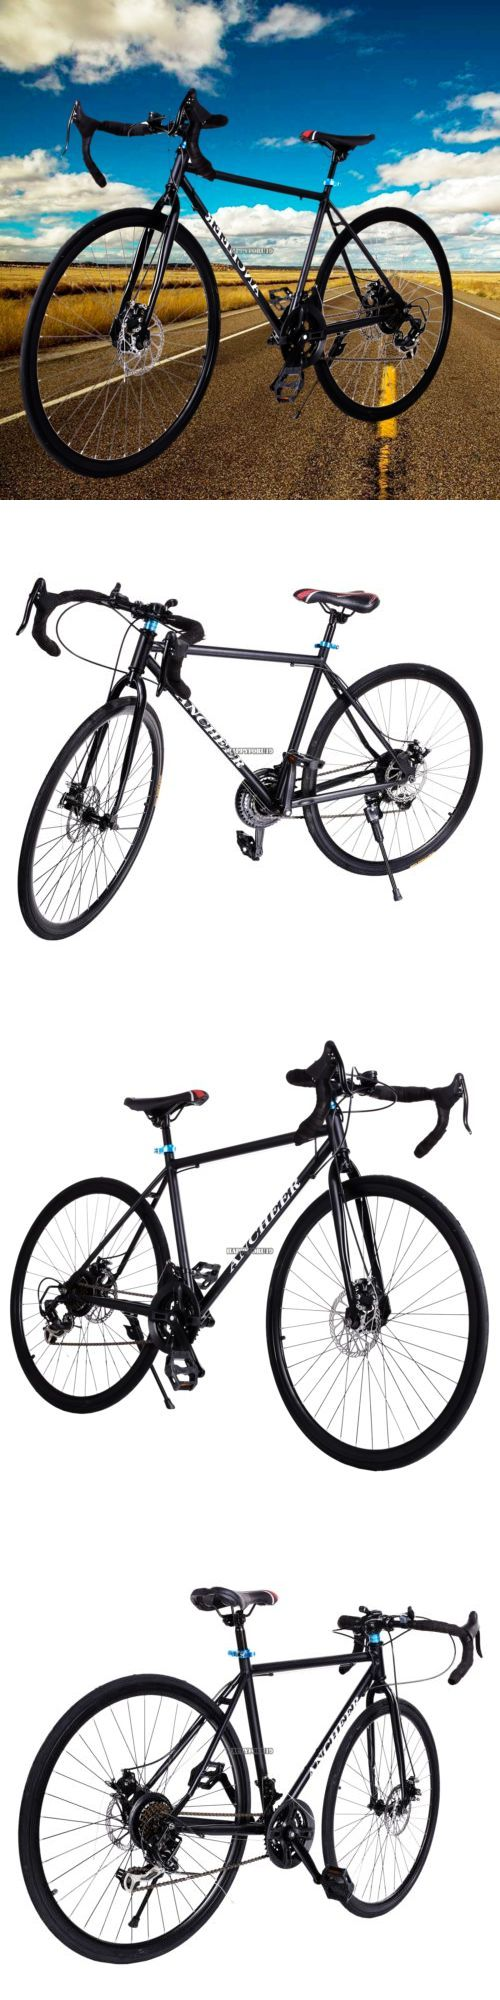 Bicycles 177831: 26Inch Mens Road Bike Racing Bicycle 700C Gear Shift Commuter Bike 440 Lbs -> BUY IT NOW ONLY: $129.38 on eBay!